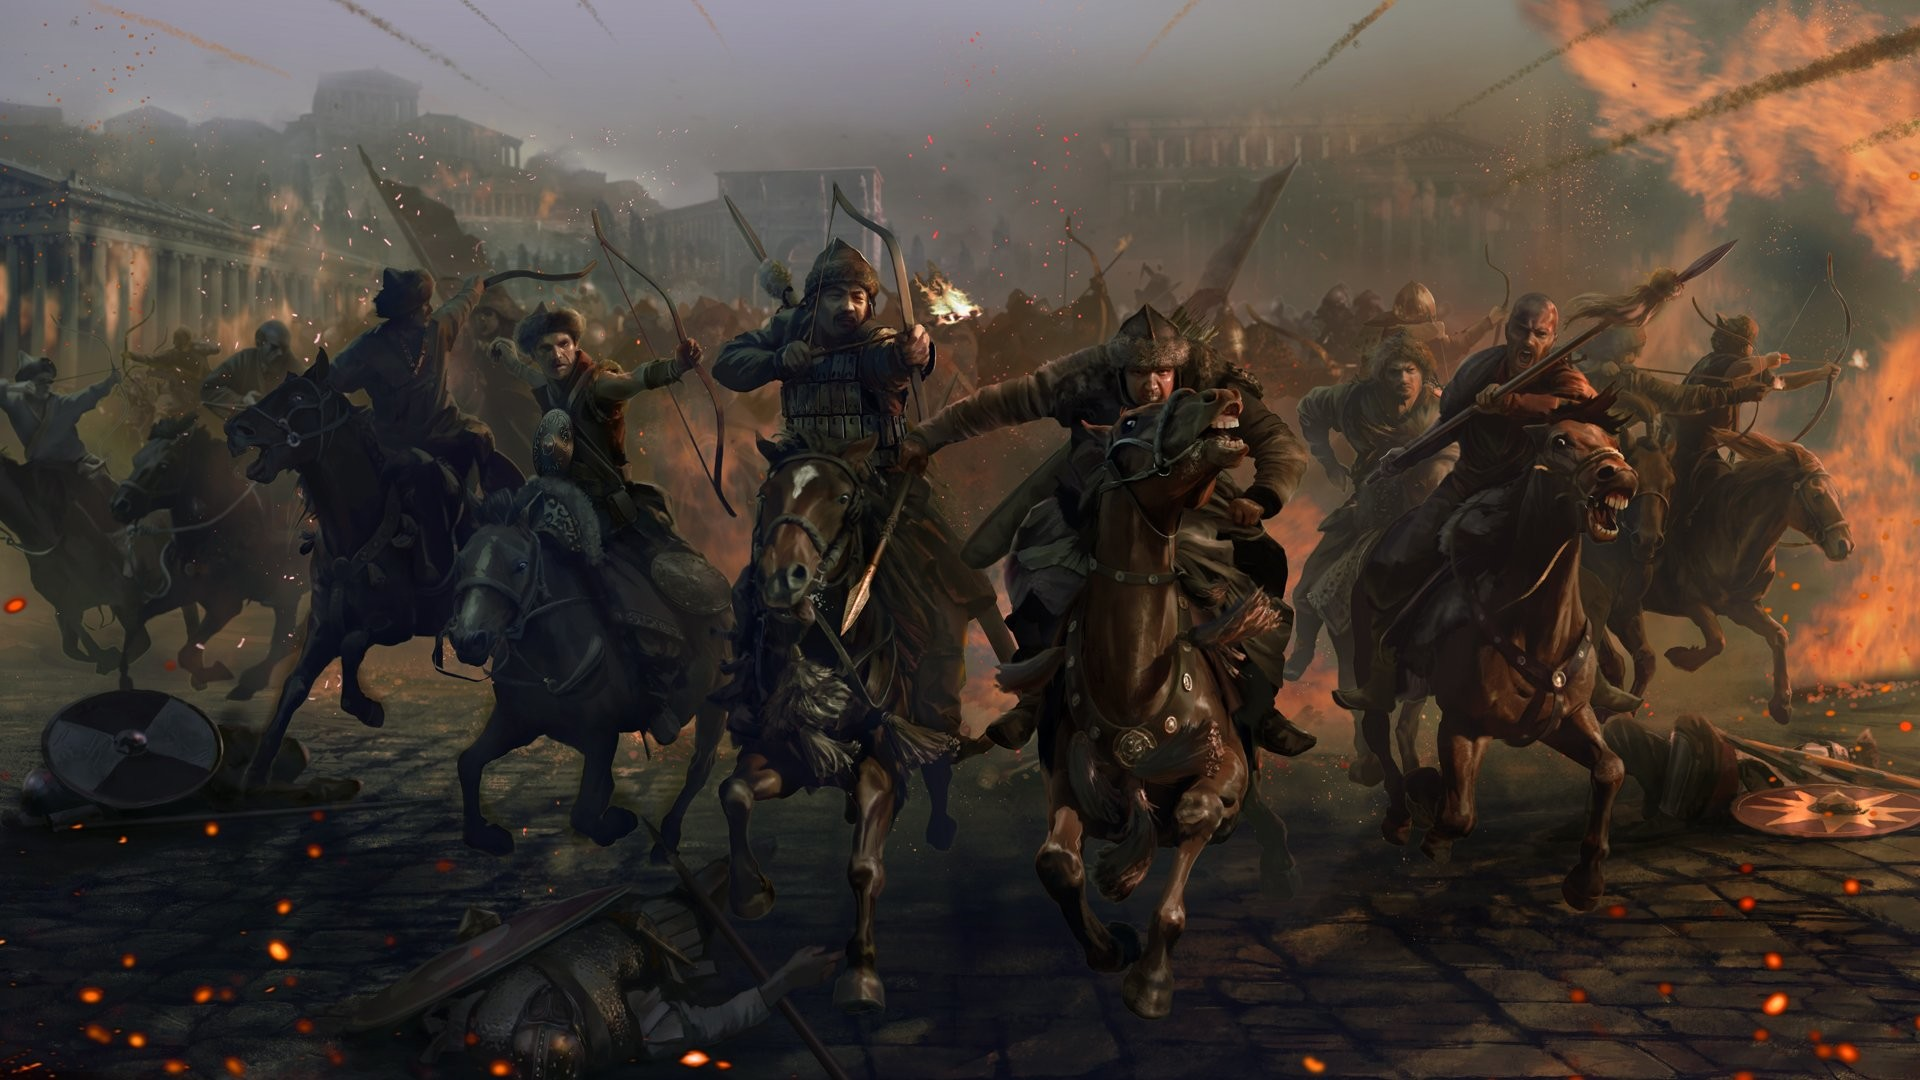 Total War Warhammer HD Wallpapers and Backgrounds   Images Wallpapers    Pinterest   Total war and Wallpaper